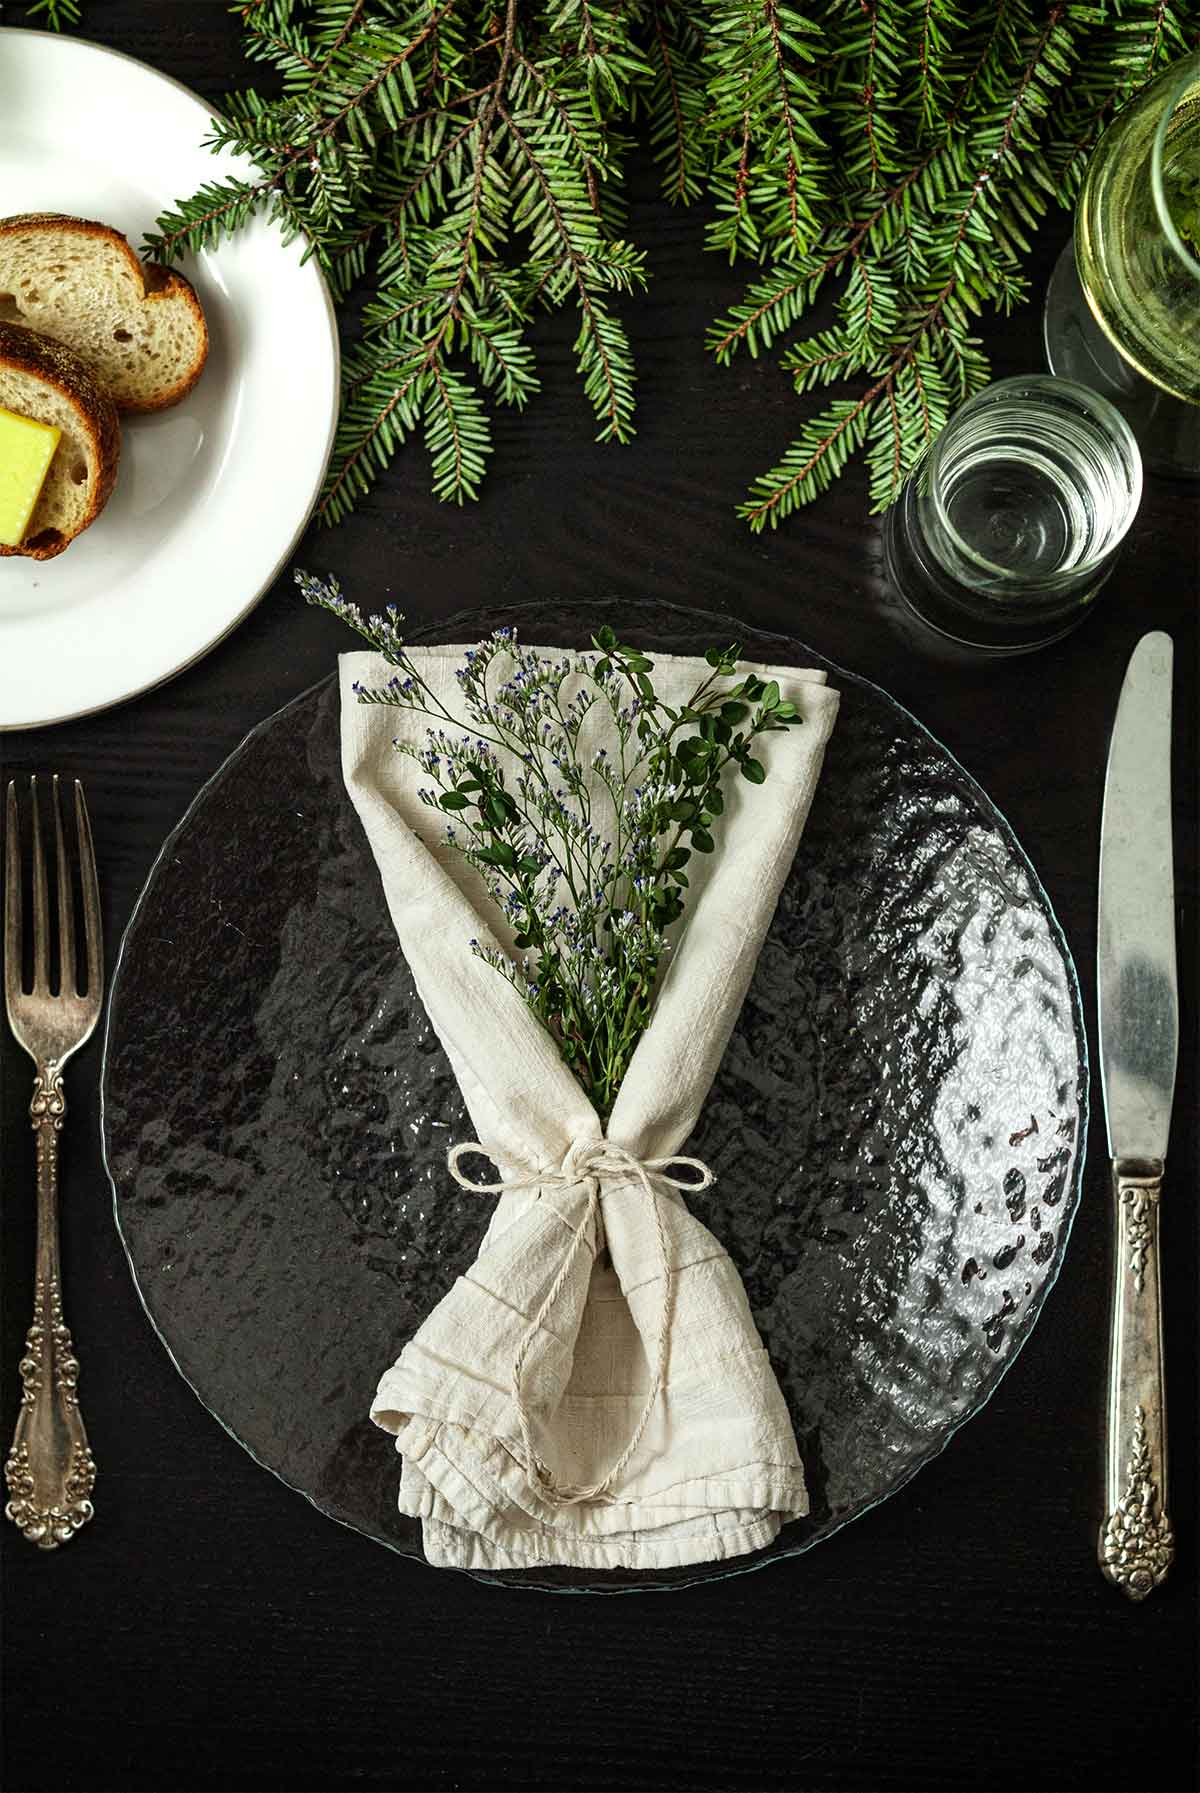 Caspia and Thyme in a napkin on a plate on a table with holiday greenery, a plate of bread, silverware and glassware.